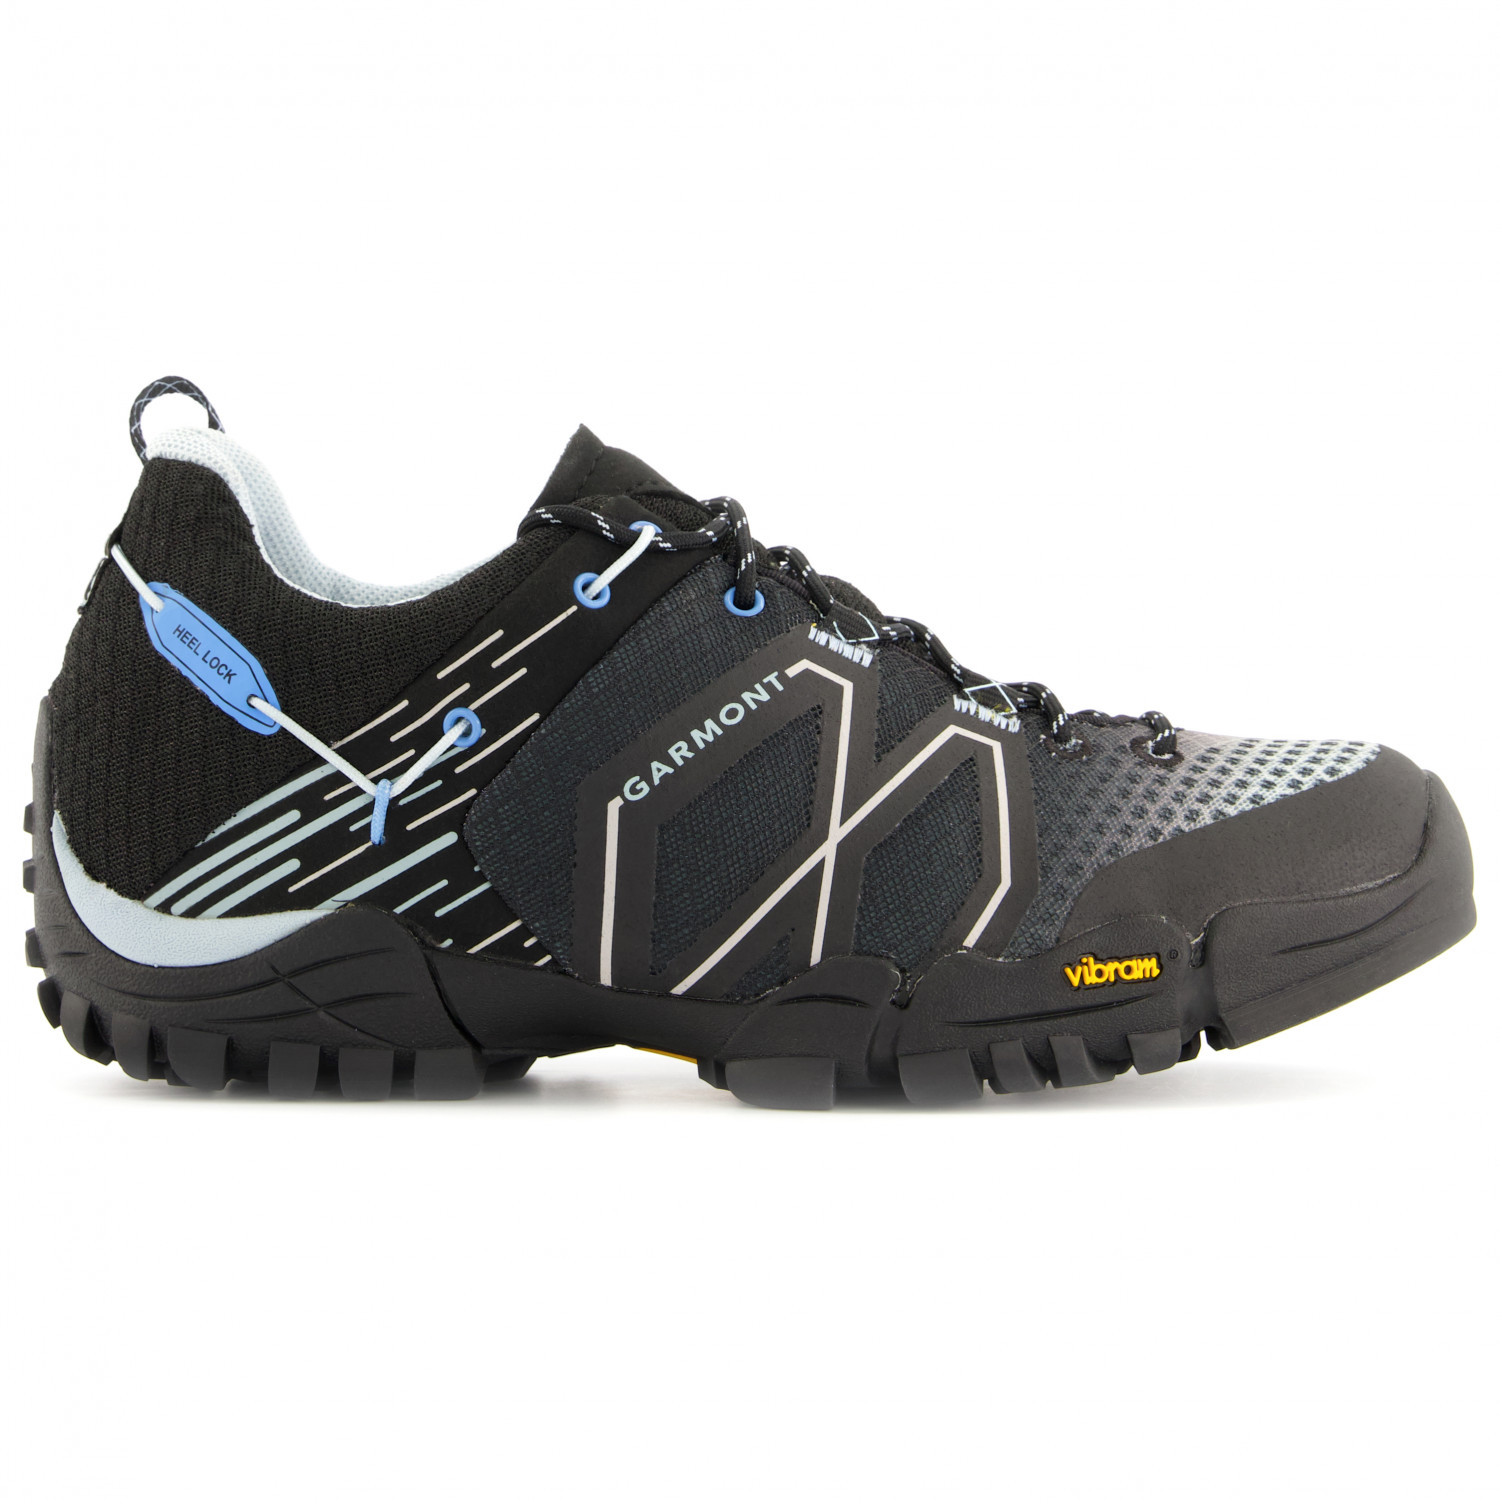 Approach Shoes For Hill Walking